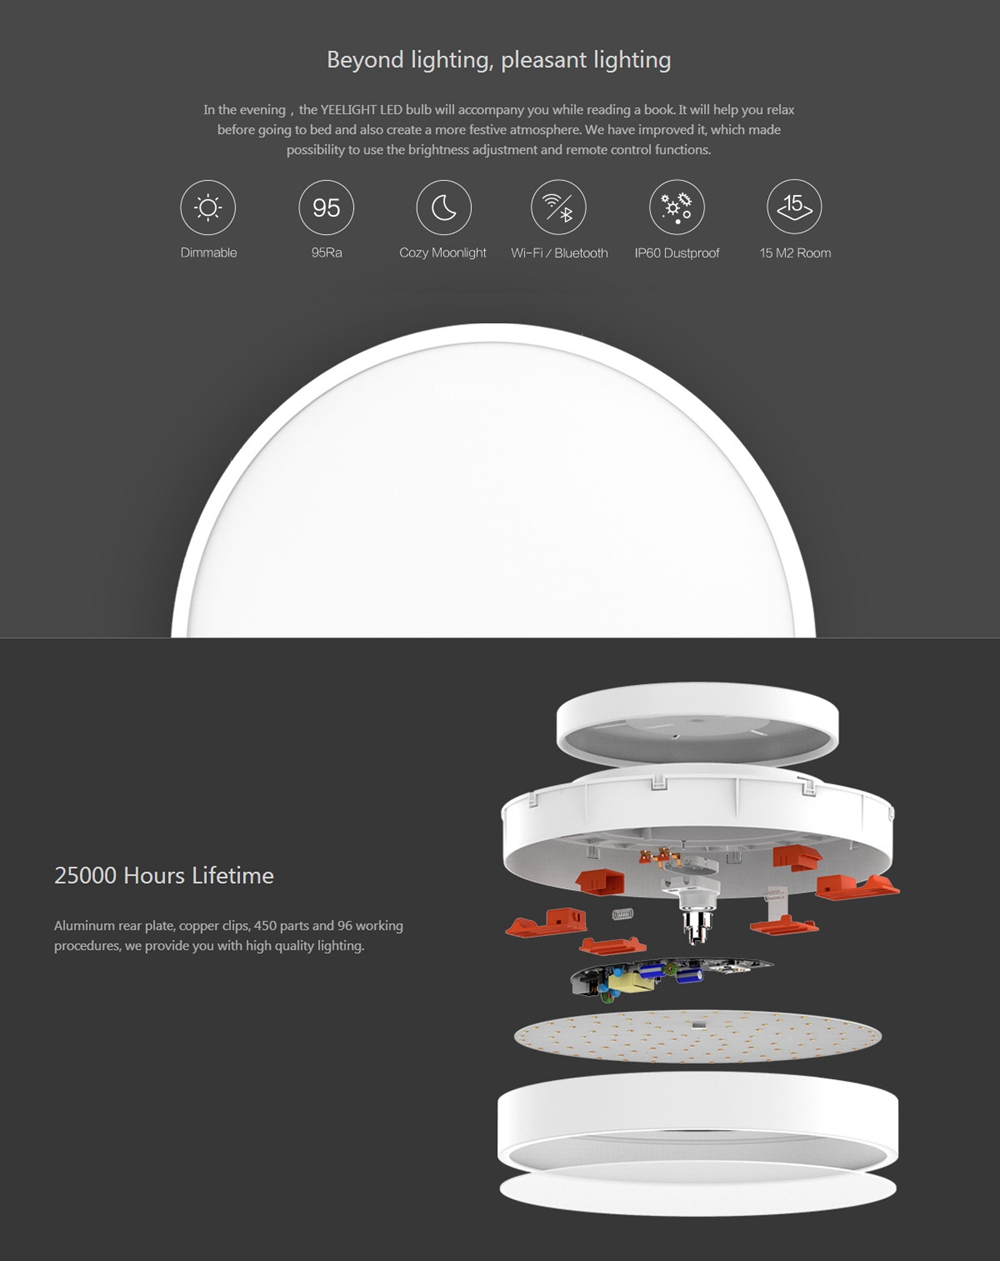 Yeelight YLXD01YL 28W Round LED Ceiling Light Smart APP bluetooth WiFi Control IP60 Dustproof (Xiaomi Ecosystem Product)